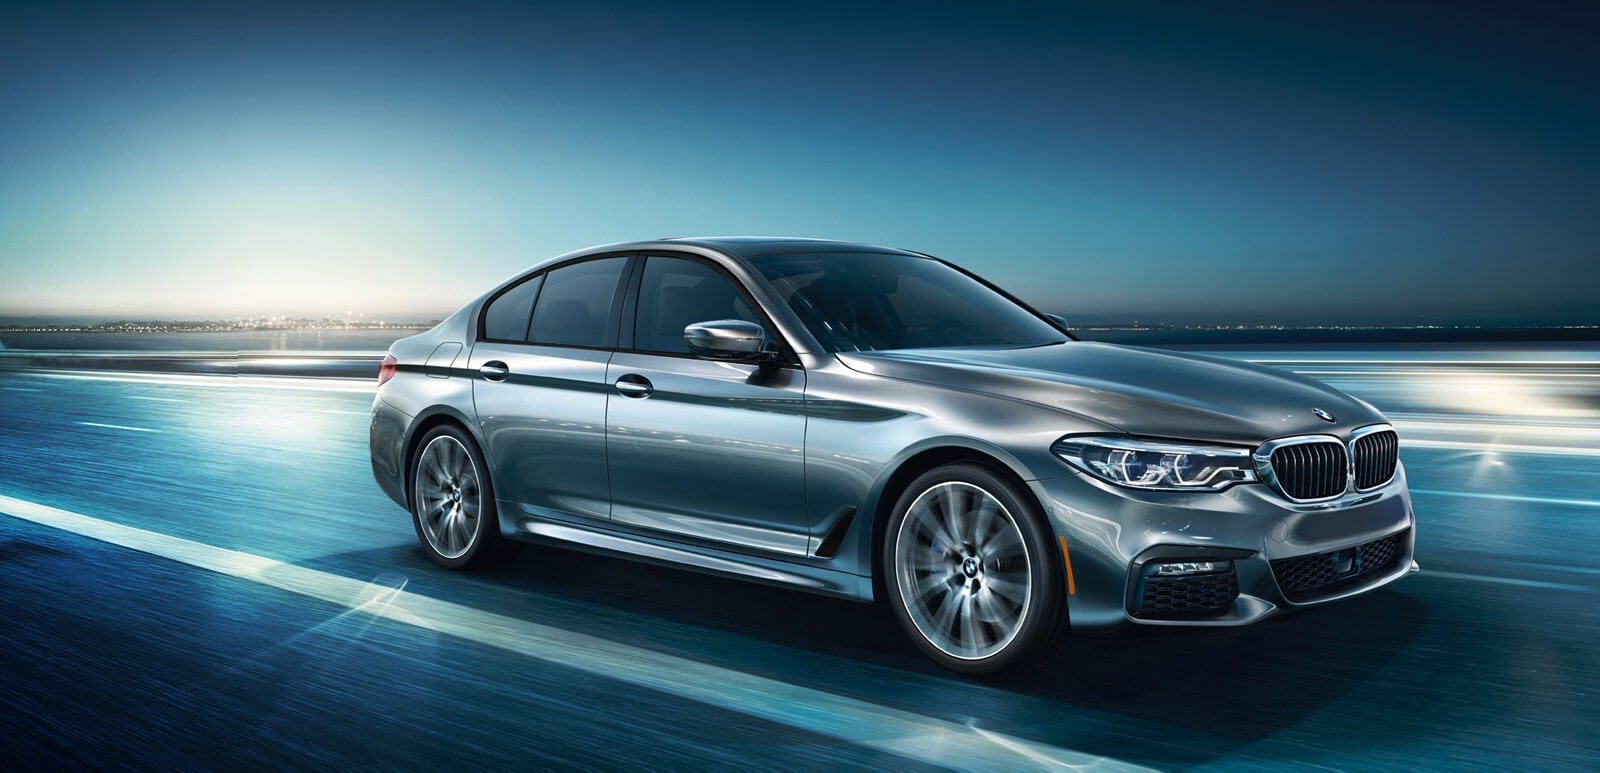 BMW 5 Series Sedan – BMW USA